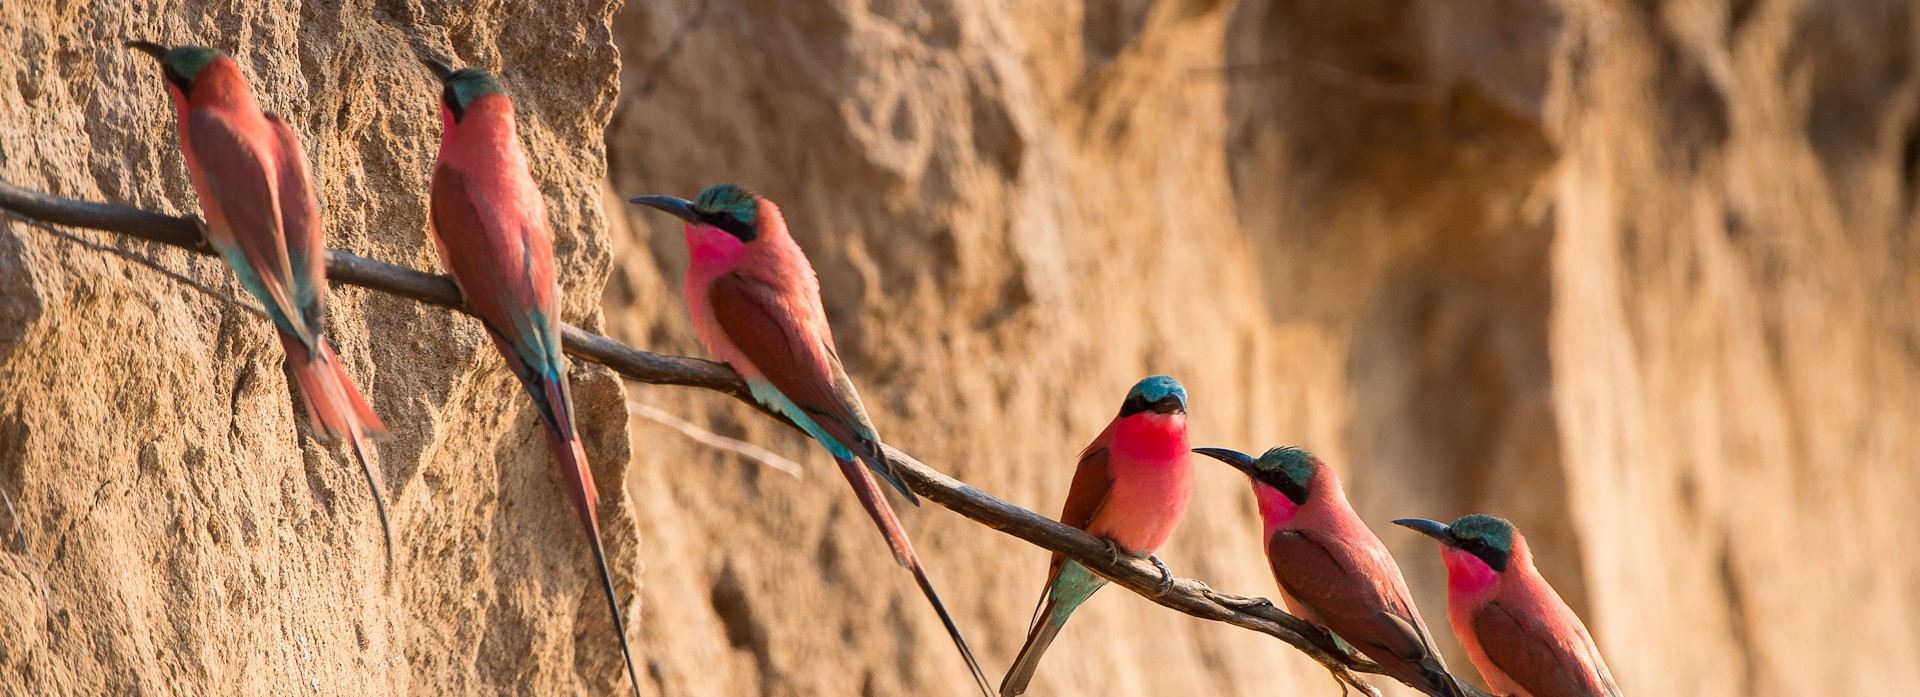 luangwa-river-zambia-bee-eaters